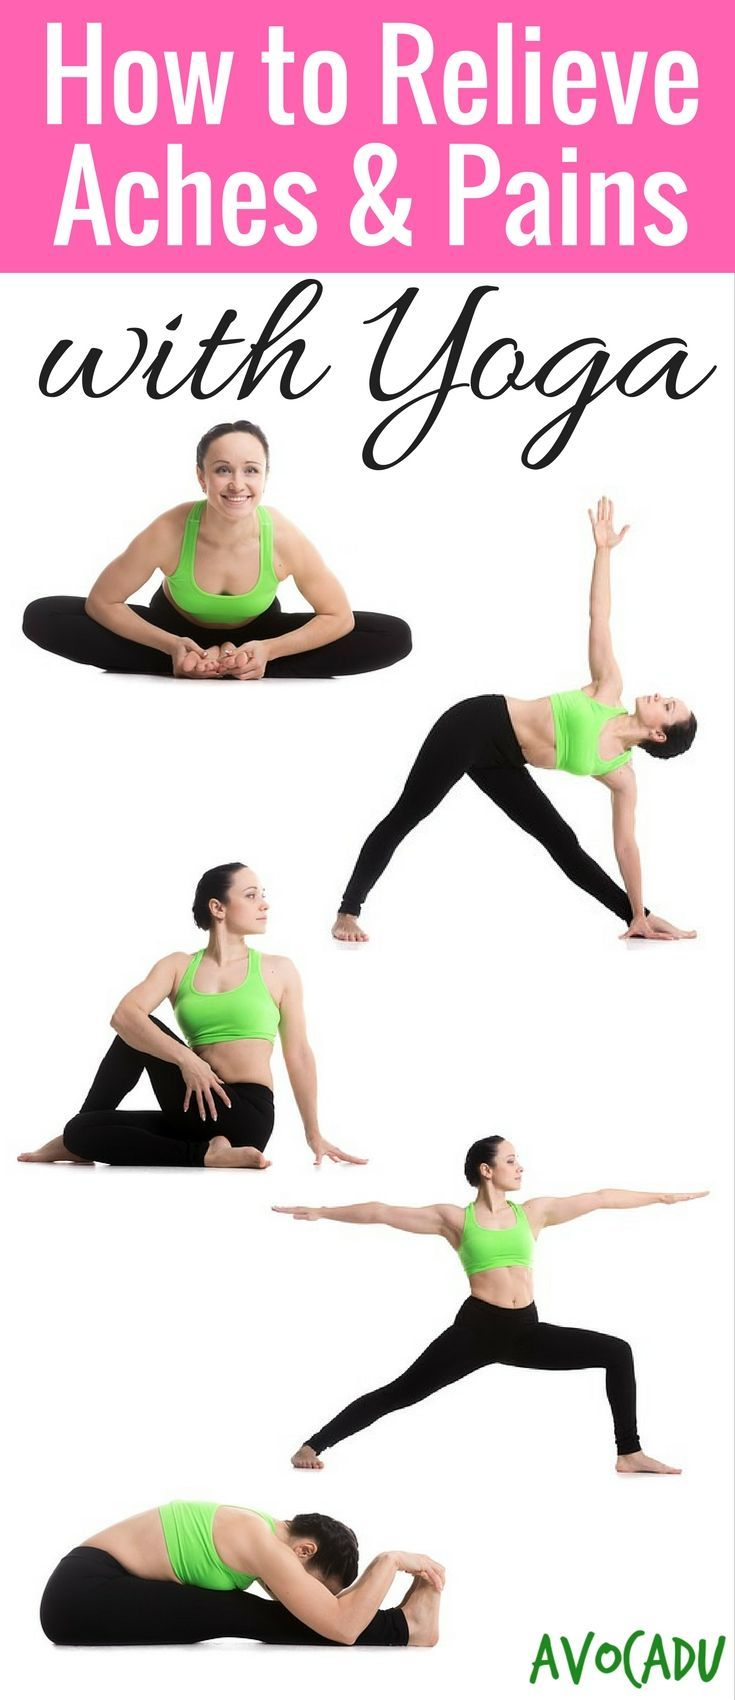 17 Best Images About Yoga On Pinterest Yoga Poses